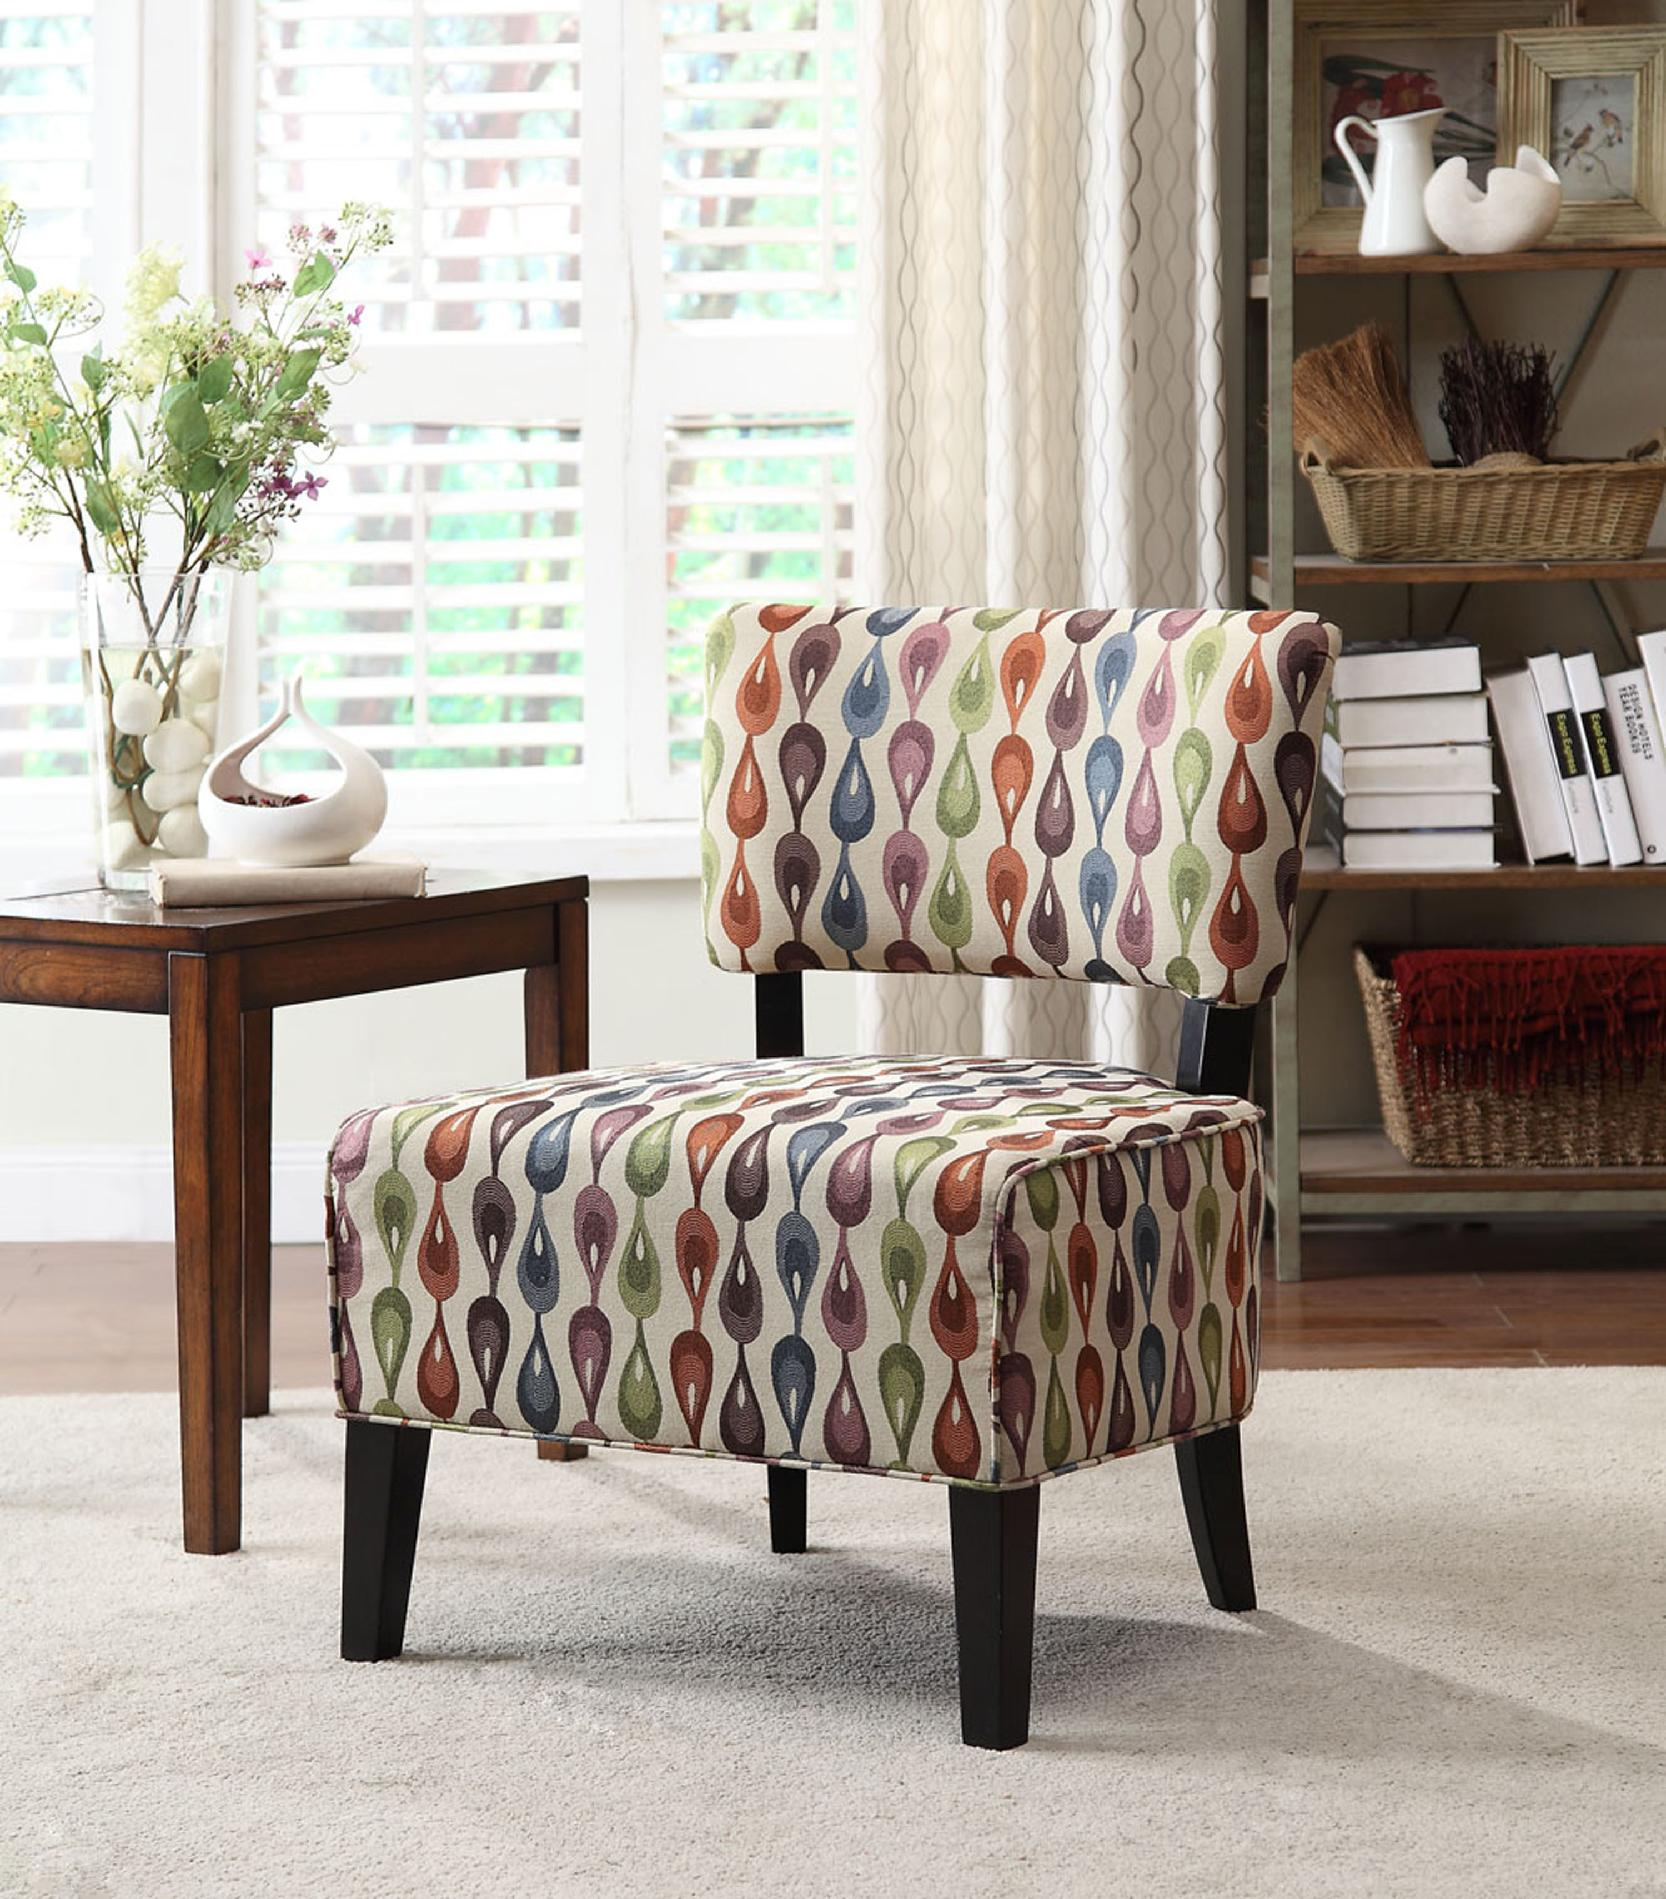 Sears Accent Chairs 06 0014 Olivia Accent Chair Sears Outlet